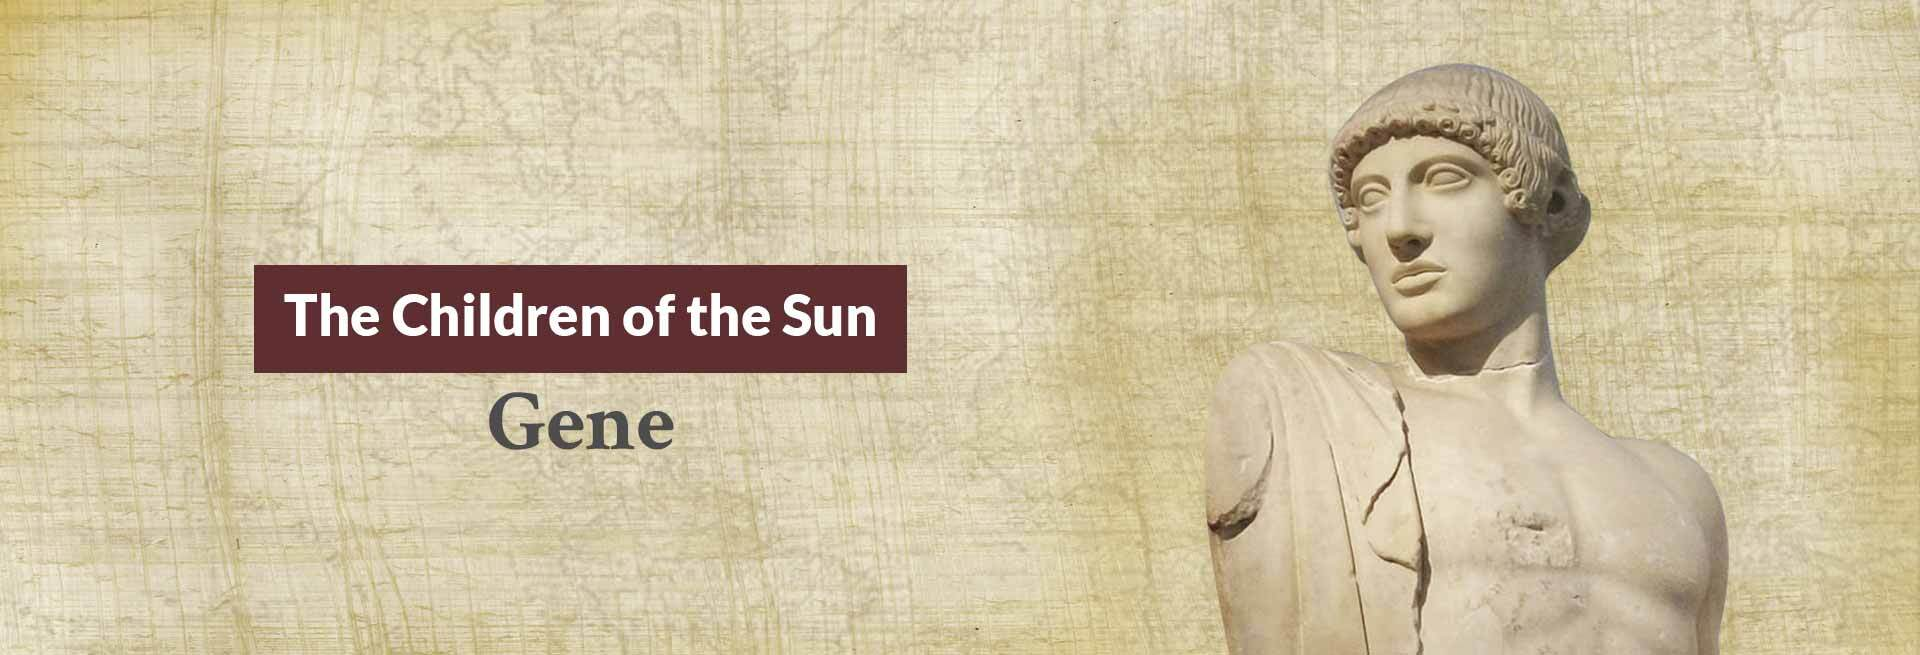 The Children of the Sun Gene Banner